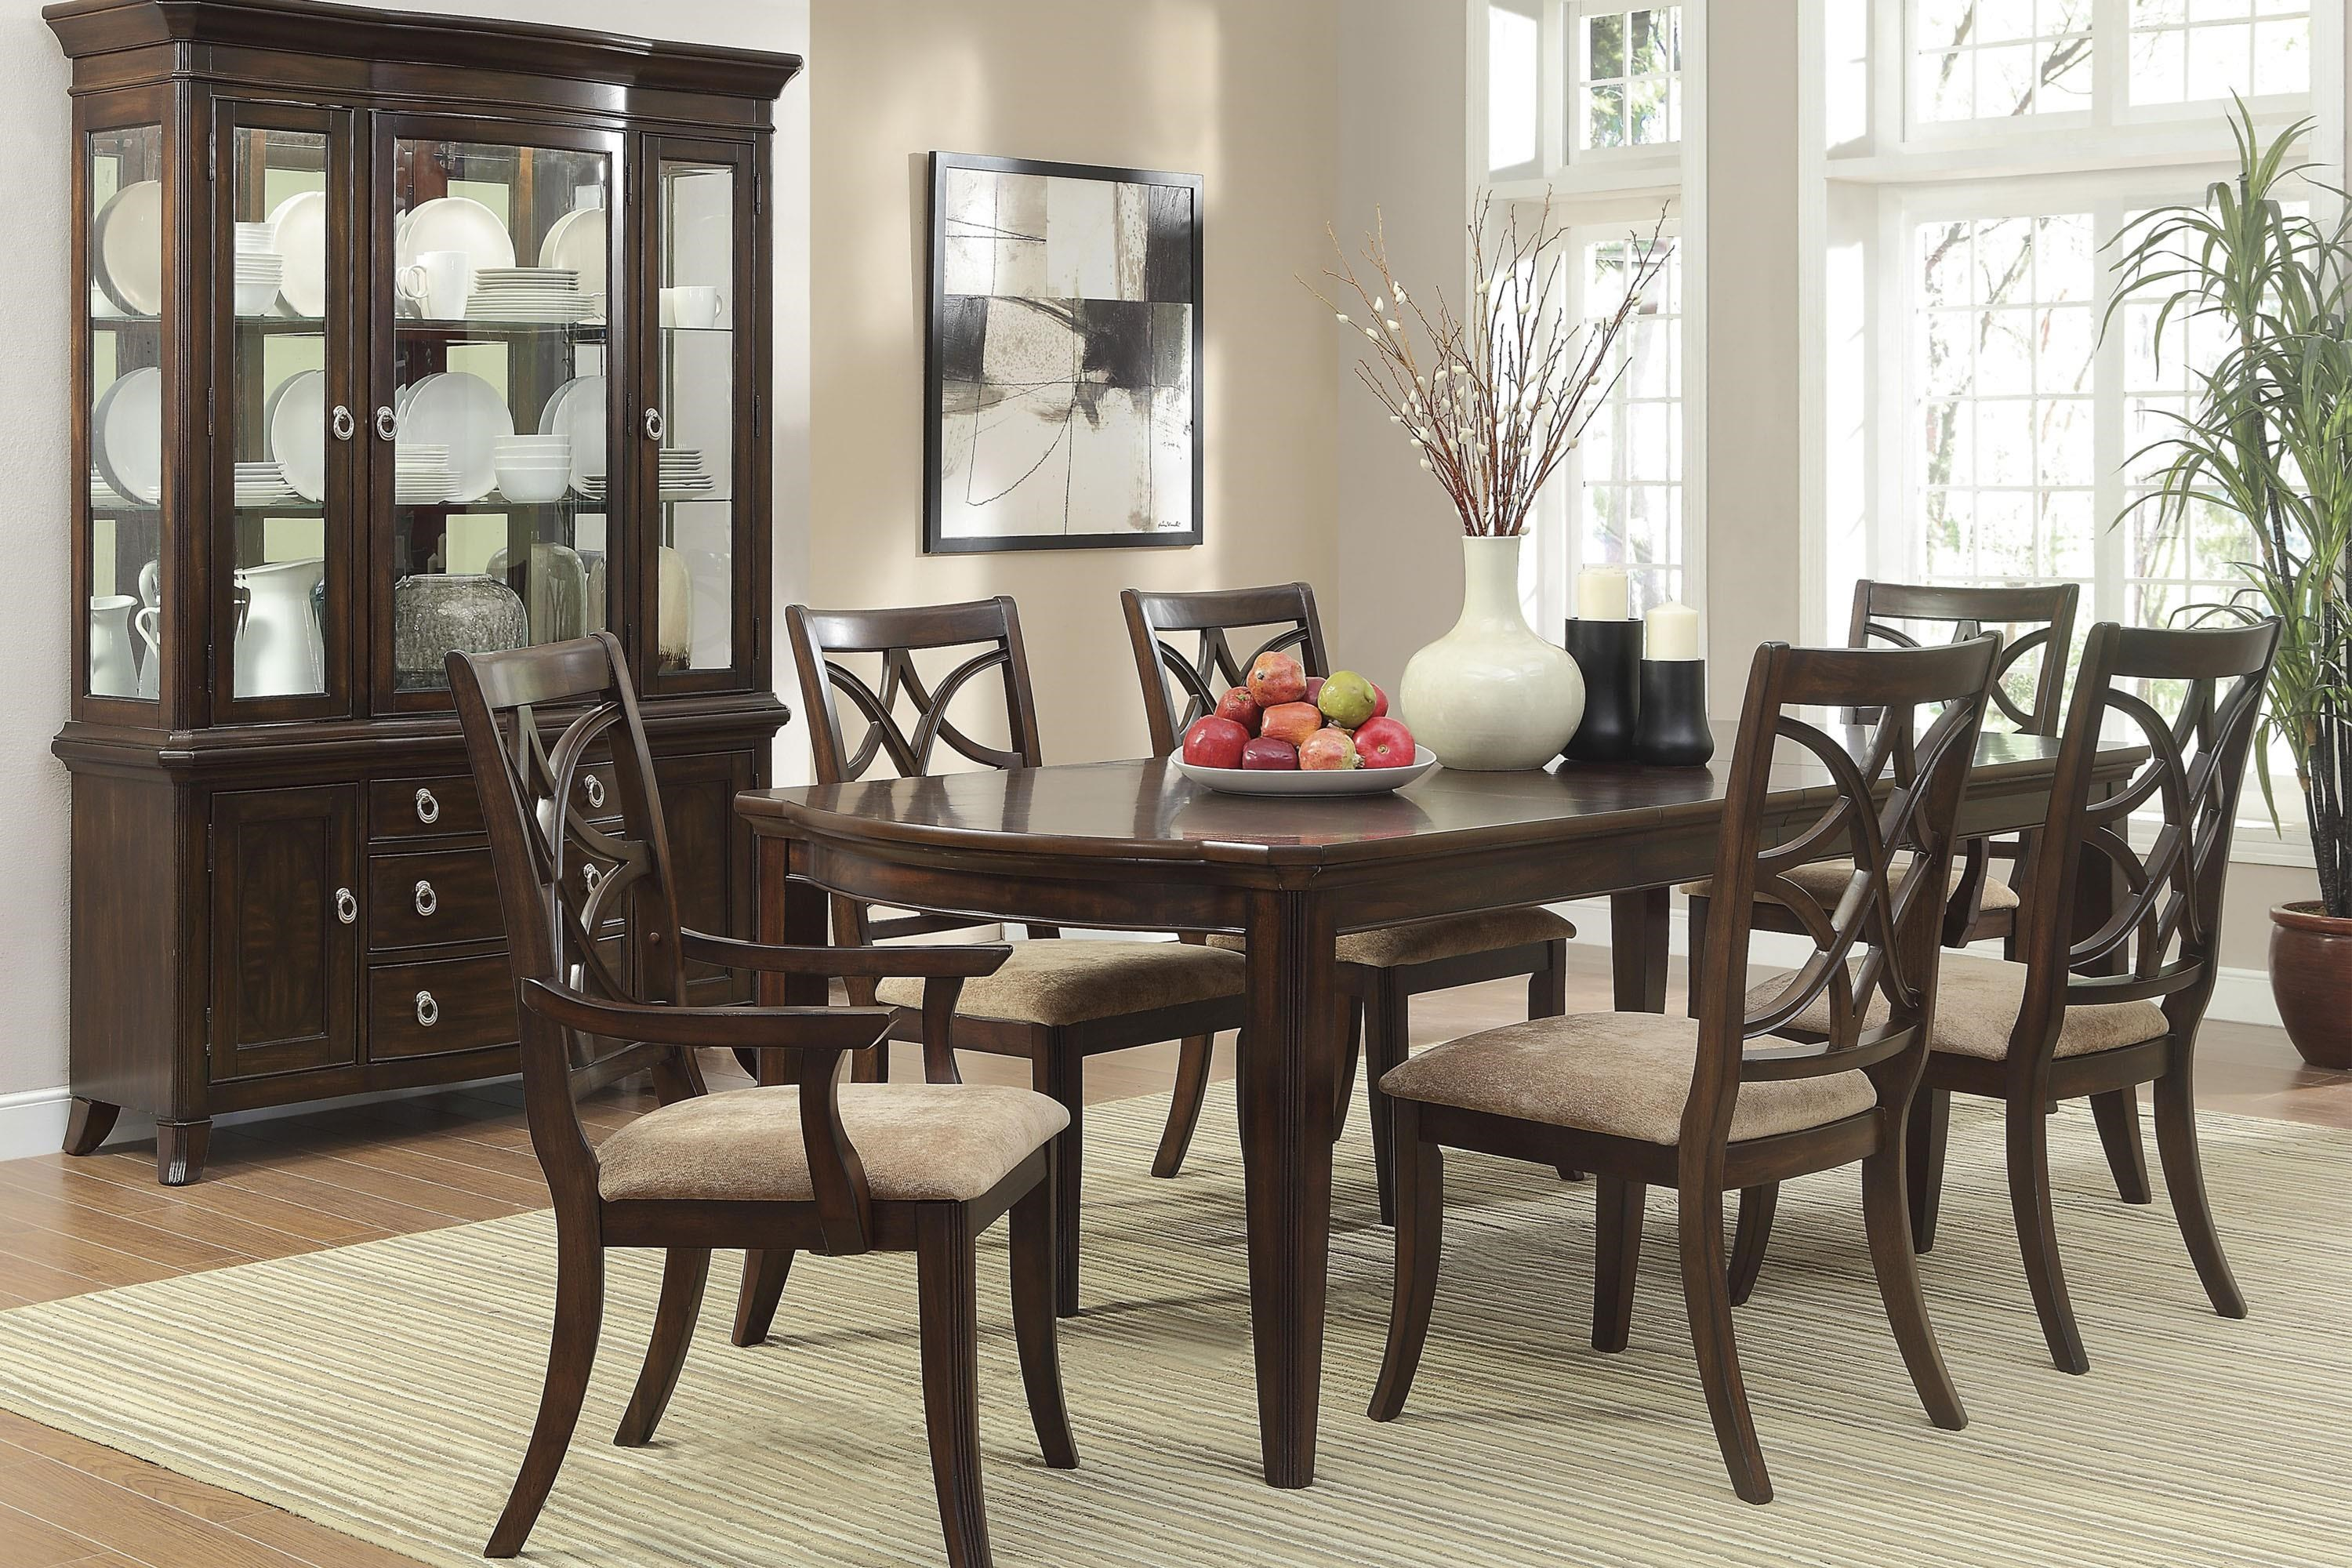 Picture of: Homelegance Keegan Espresso 2546 96 2a 4s Contemporary 7 Piece Dining Set Beck S Furniture Dining 7 Or More Piece Sets